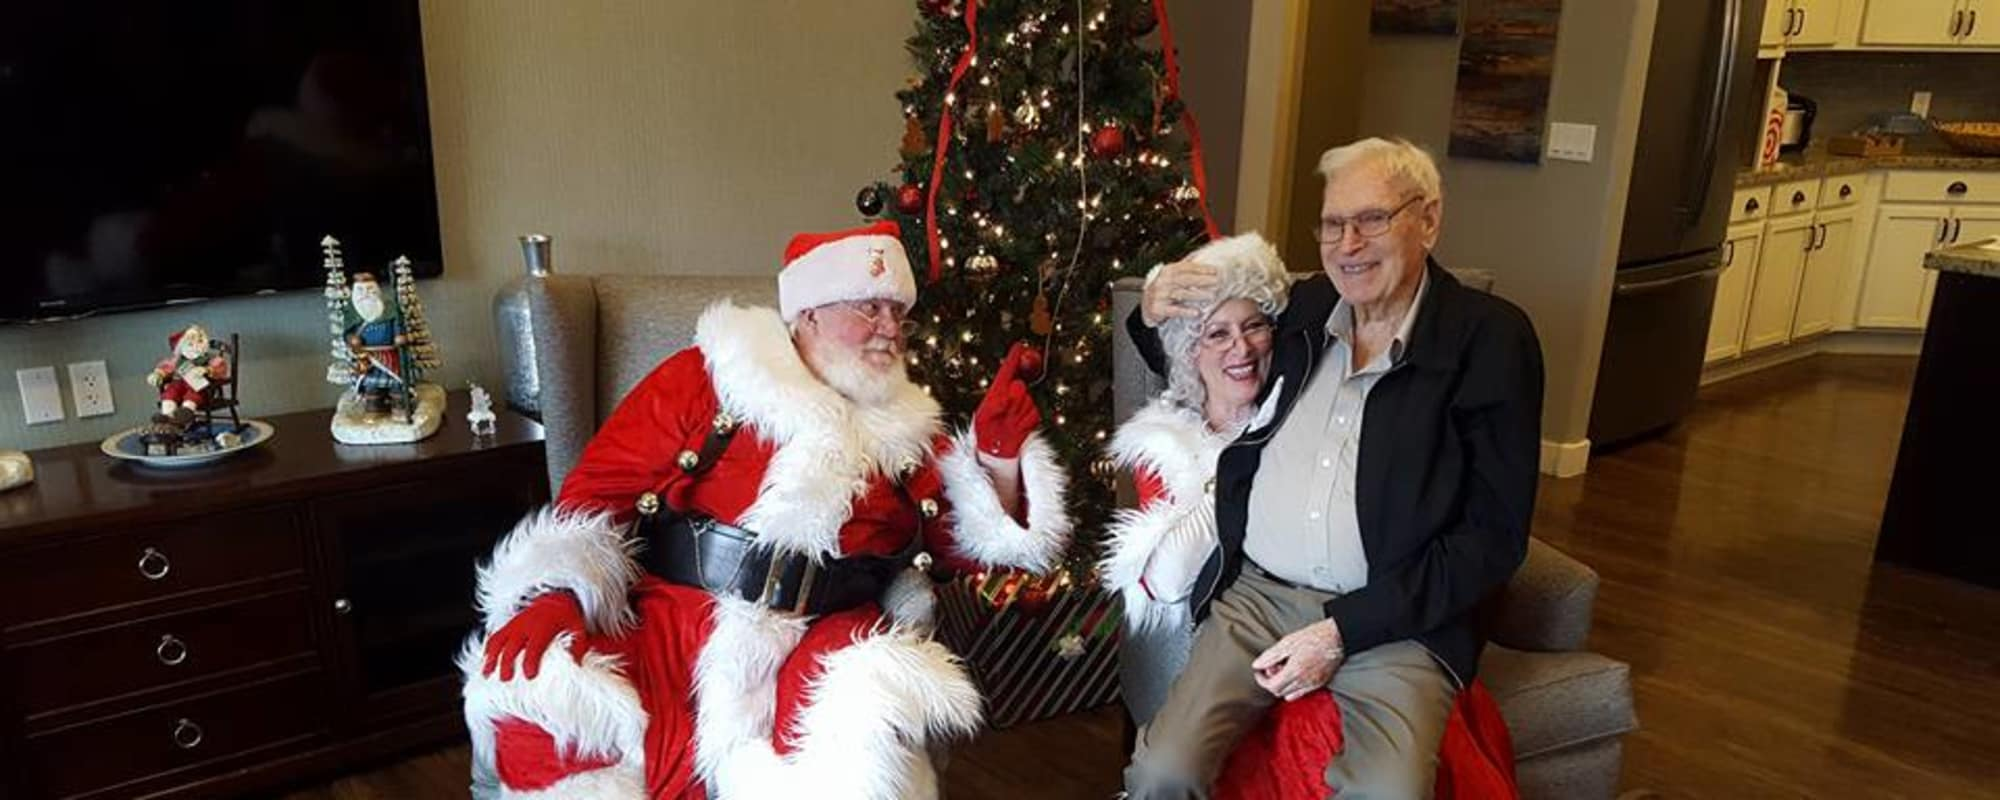 Seniors sitting with Santa at Hacienda Del Rey in Litchfield Park, Arizona